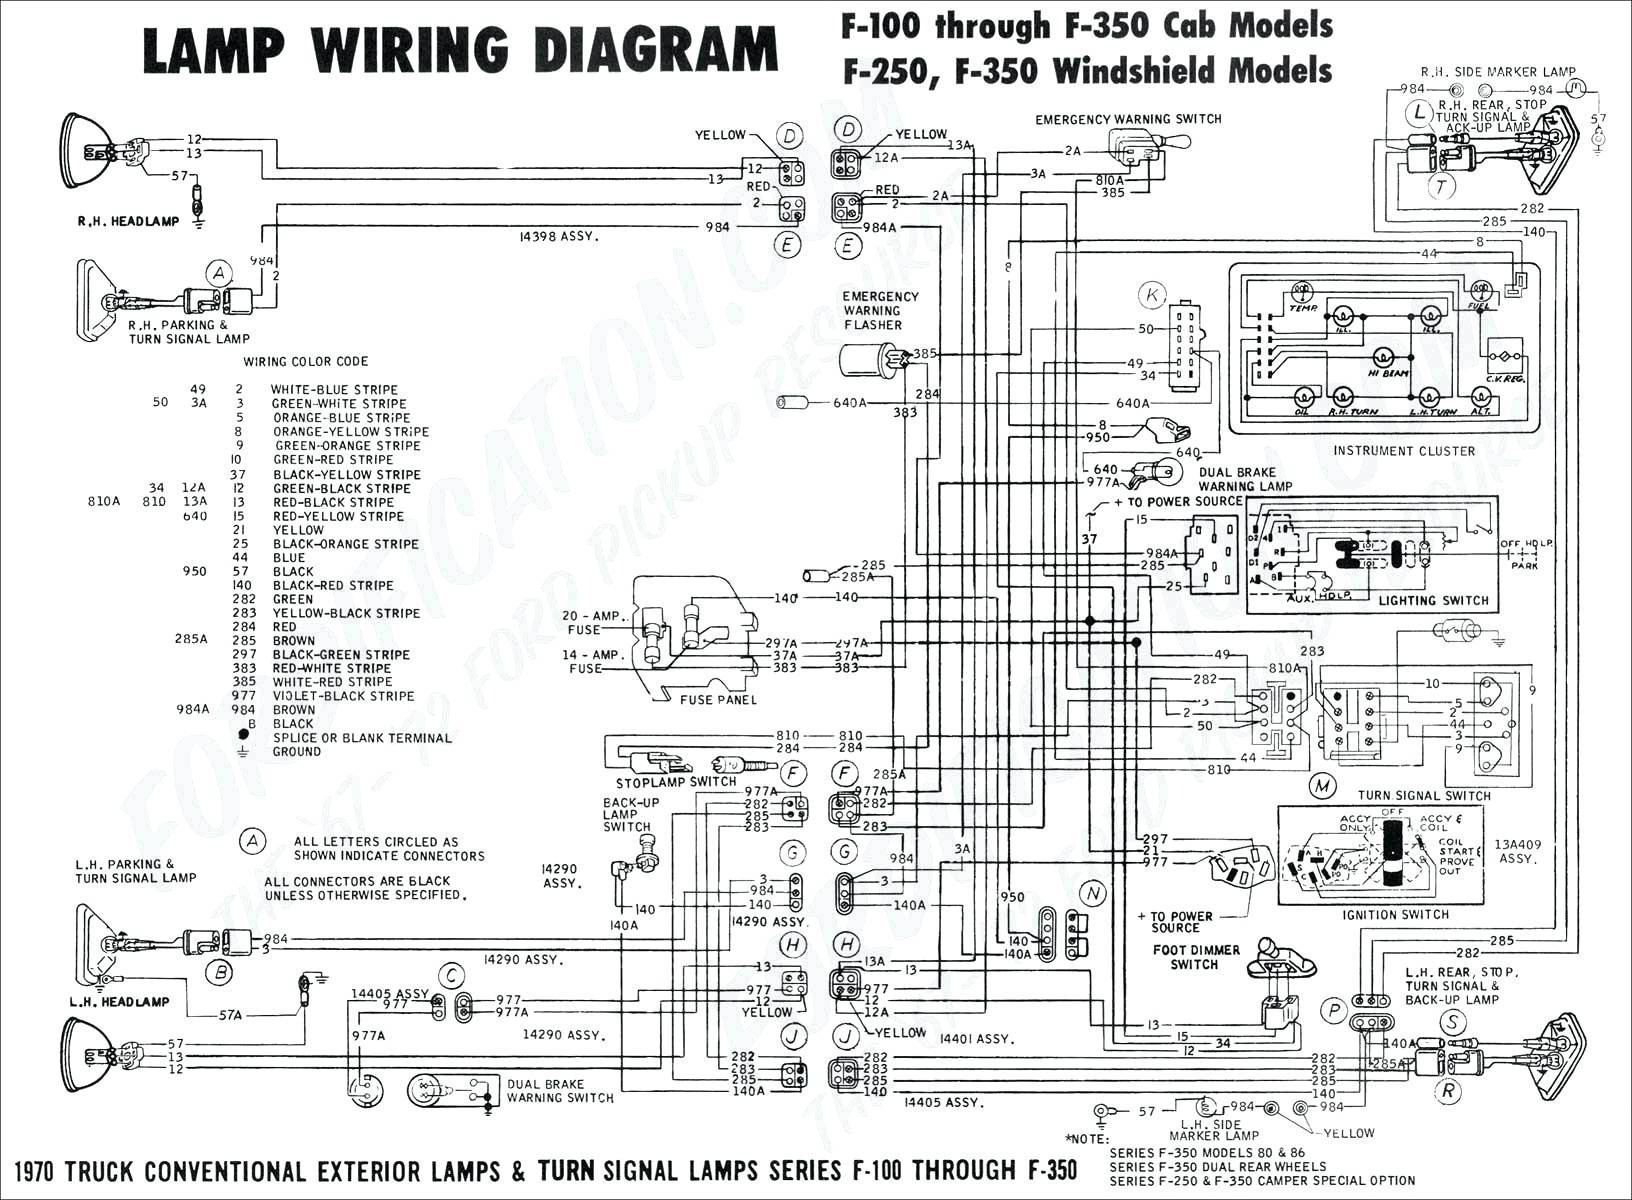 wiring diagram vauxhall vivaro top rated wiring diagram vauxhall rh  joescablecar 1972 Vauxhall Viva Vauxhall Corsa